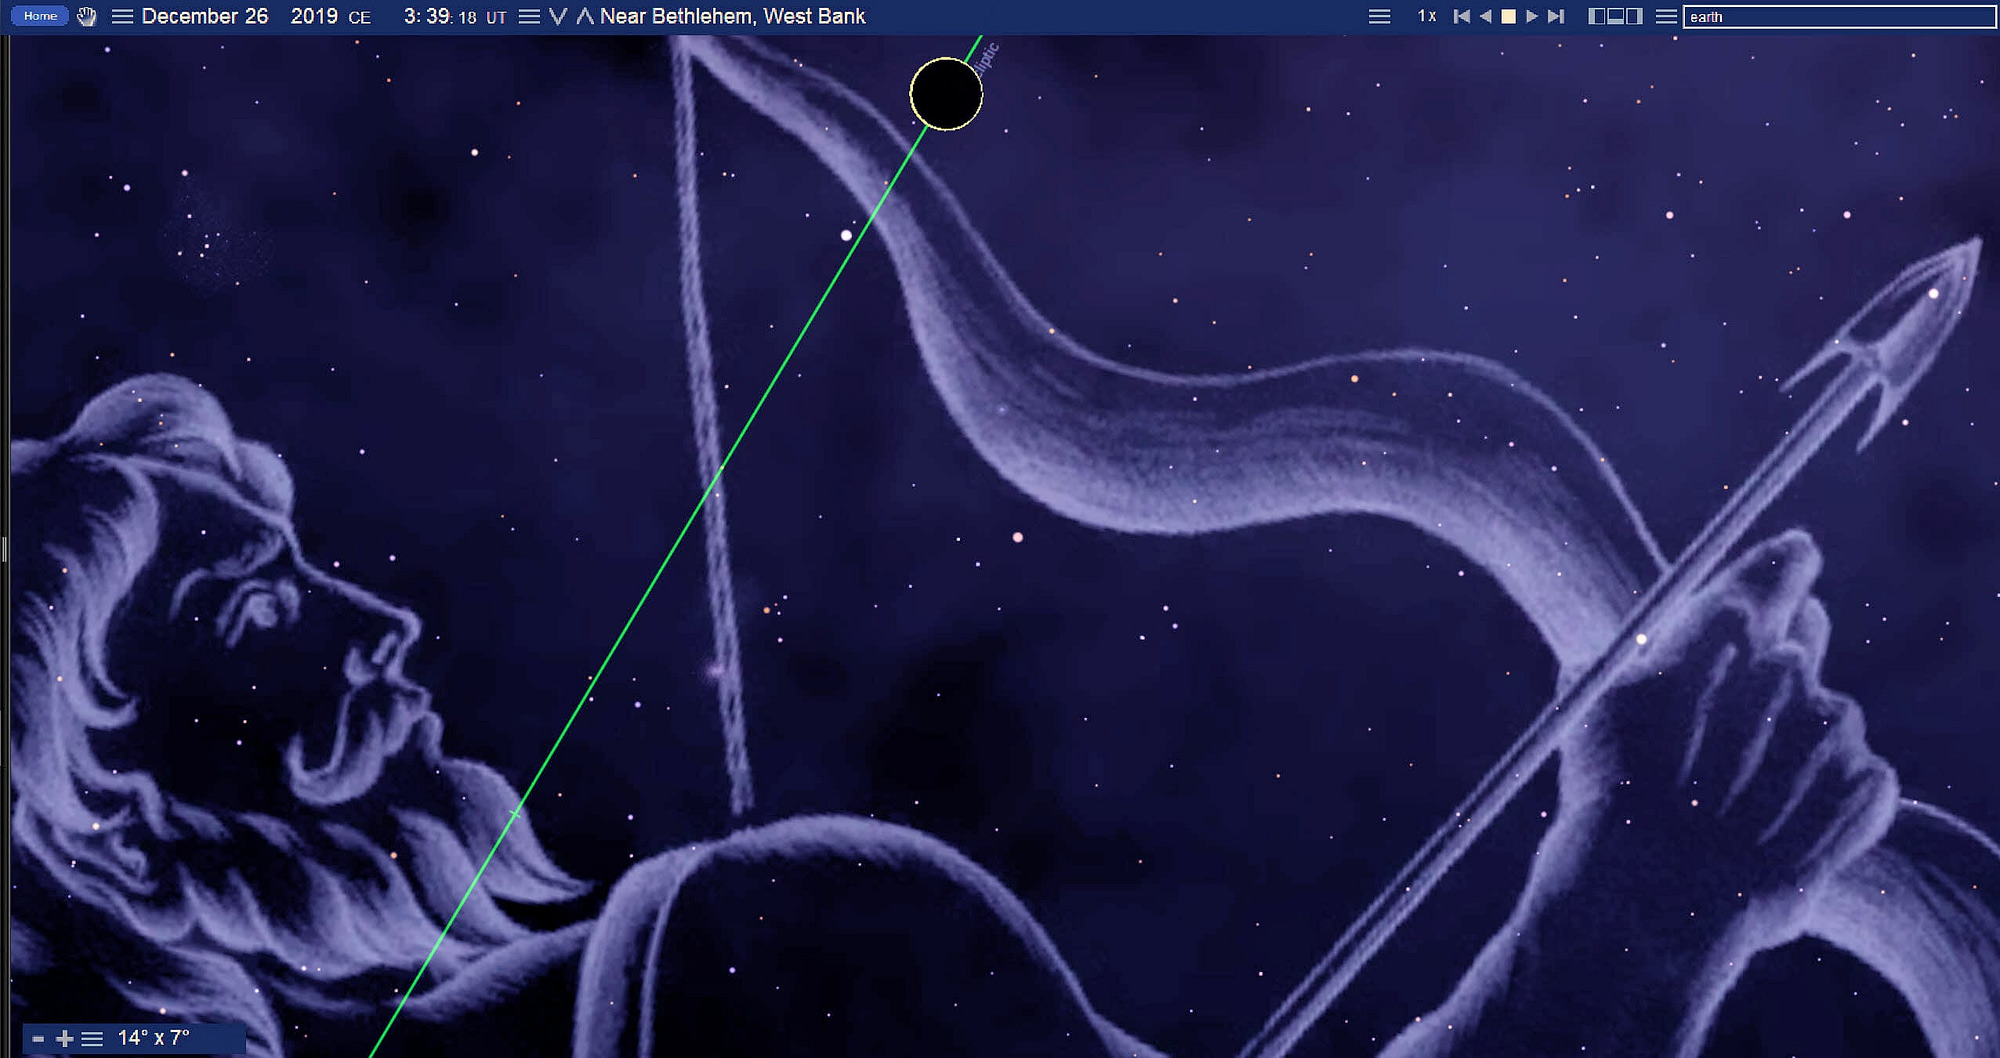 Starry Night Software showing the annular eclipse from Bethlehem (near Jerusalem) when the earth is transparent.